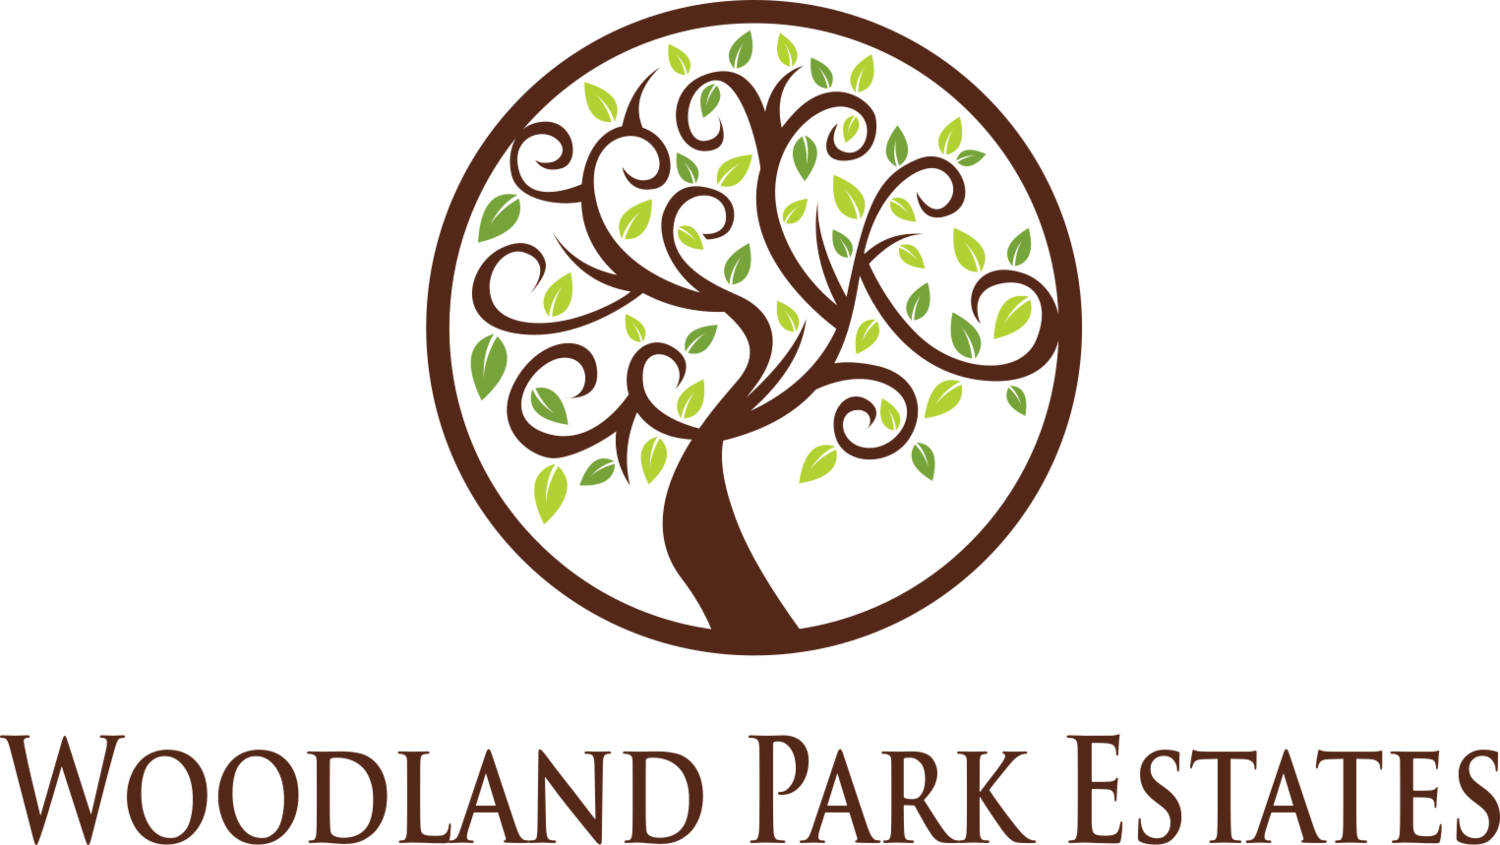 Woodland Park Estates